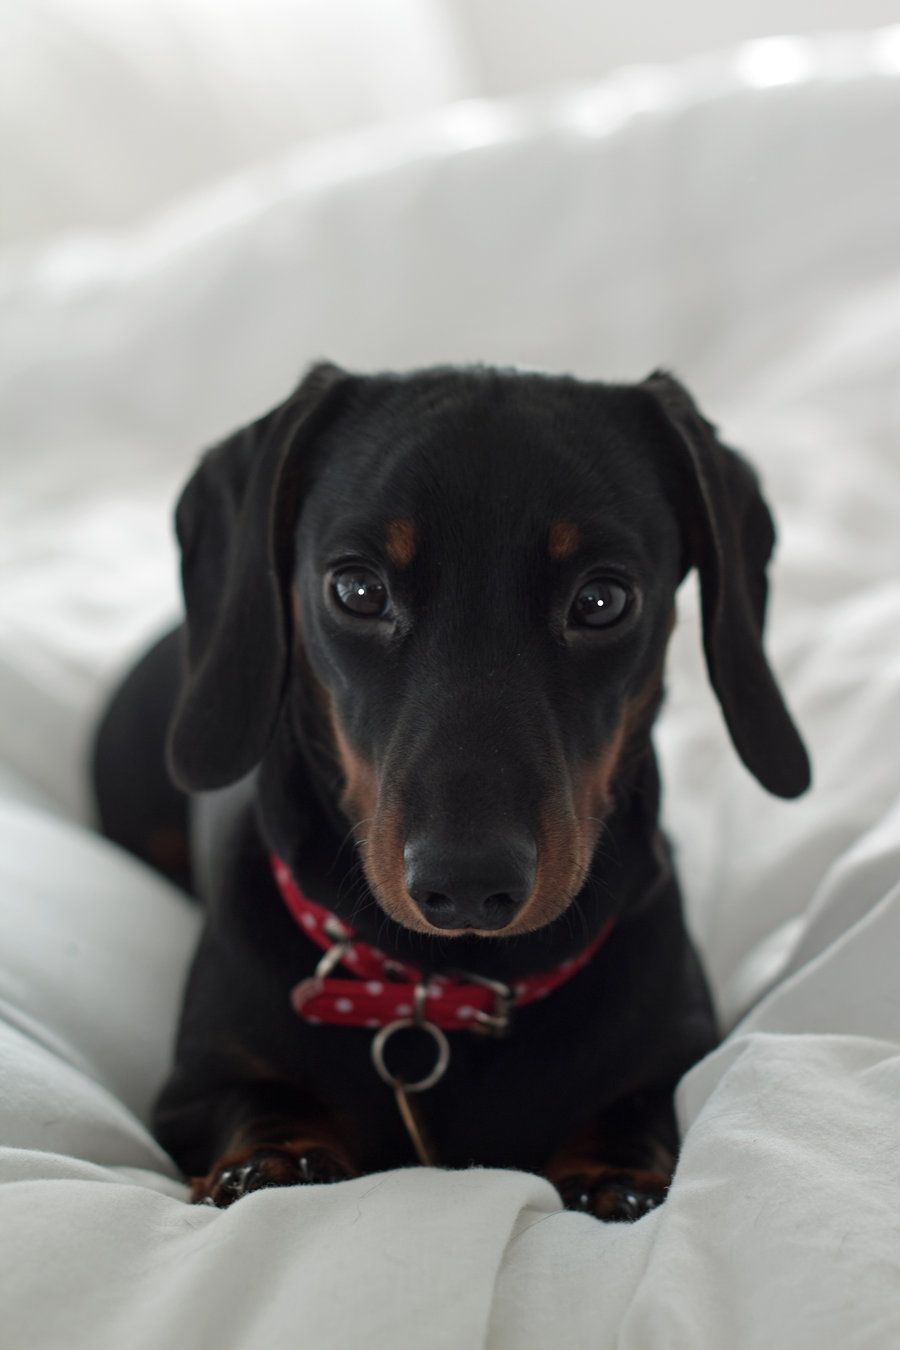 Mwehehehe And This Is Why I Have Two Dachshunds So Cute Black